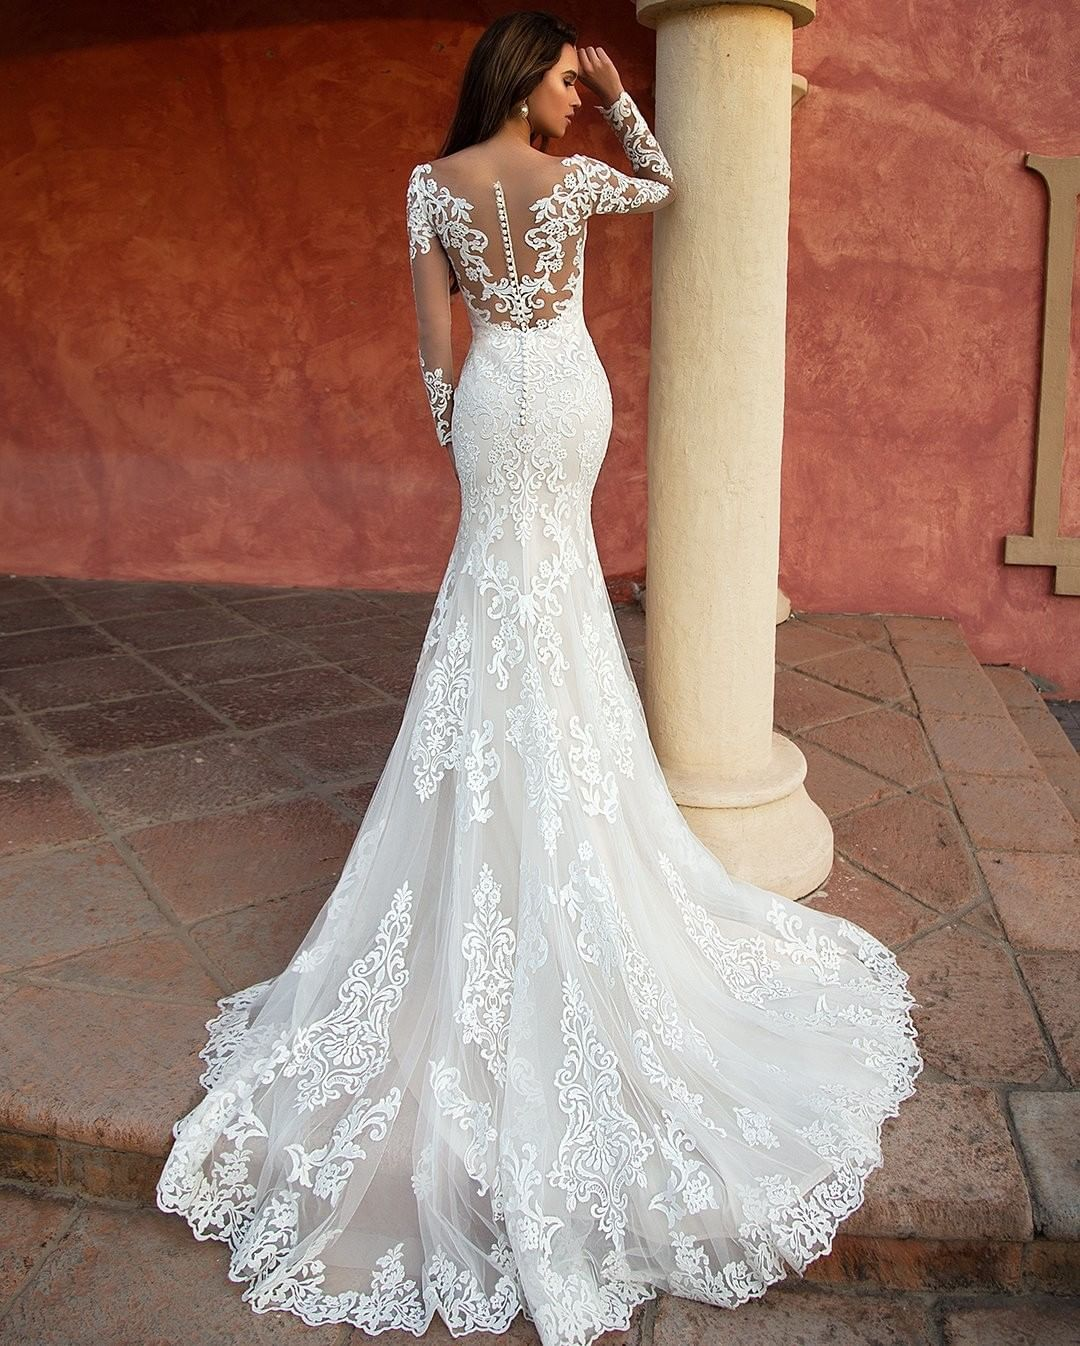 Gorgeous White Mermaid Wedding Dress Long Sleeves Lace Appliques Scoop Neck Court Train Illusion Handmade Bridal Gowns